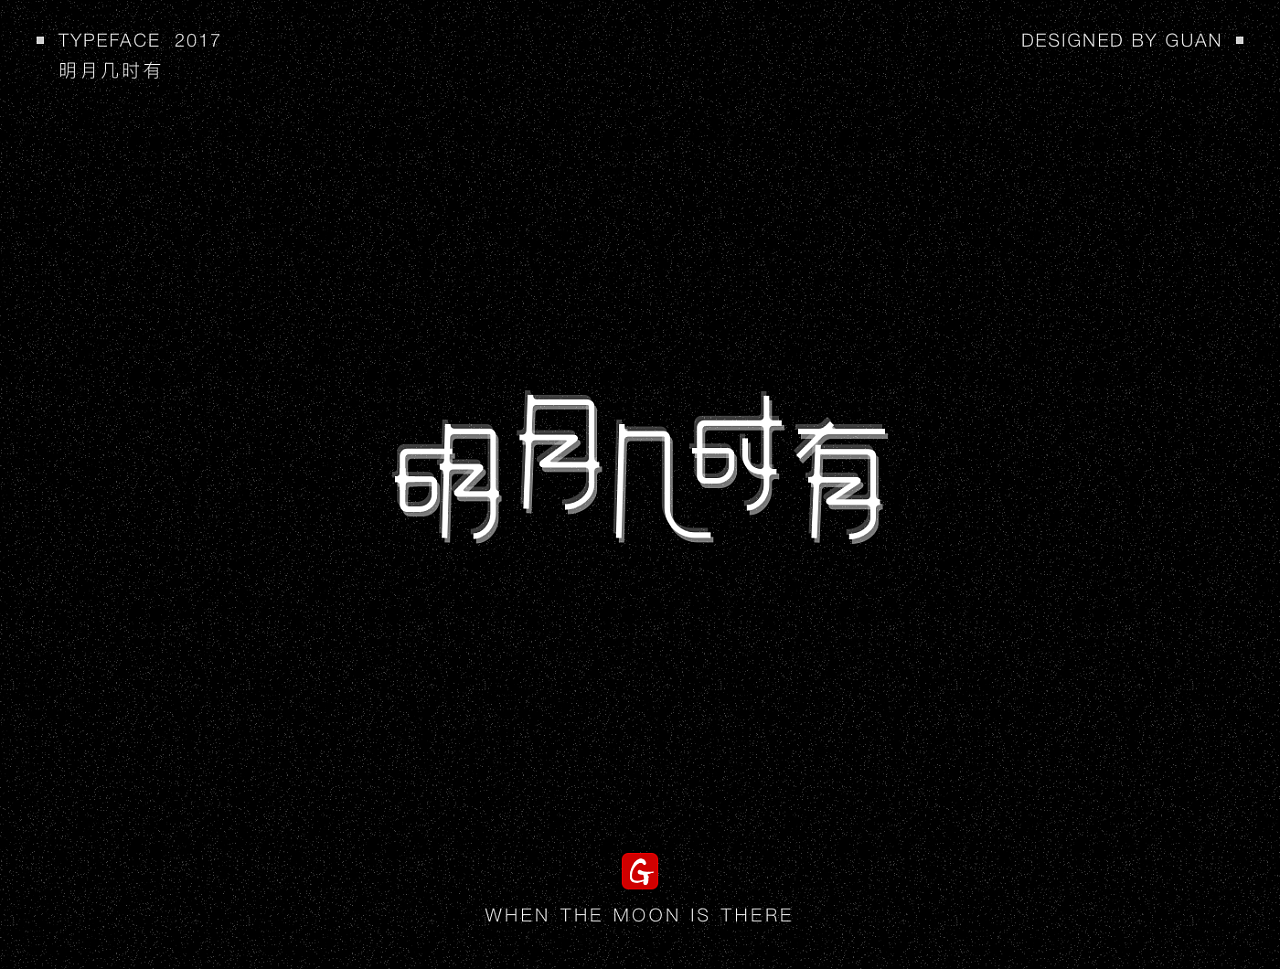 chinesefontdesign.com 2017 09 19 10 54 32 688180 20P Super fashionable Chinese font style design